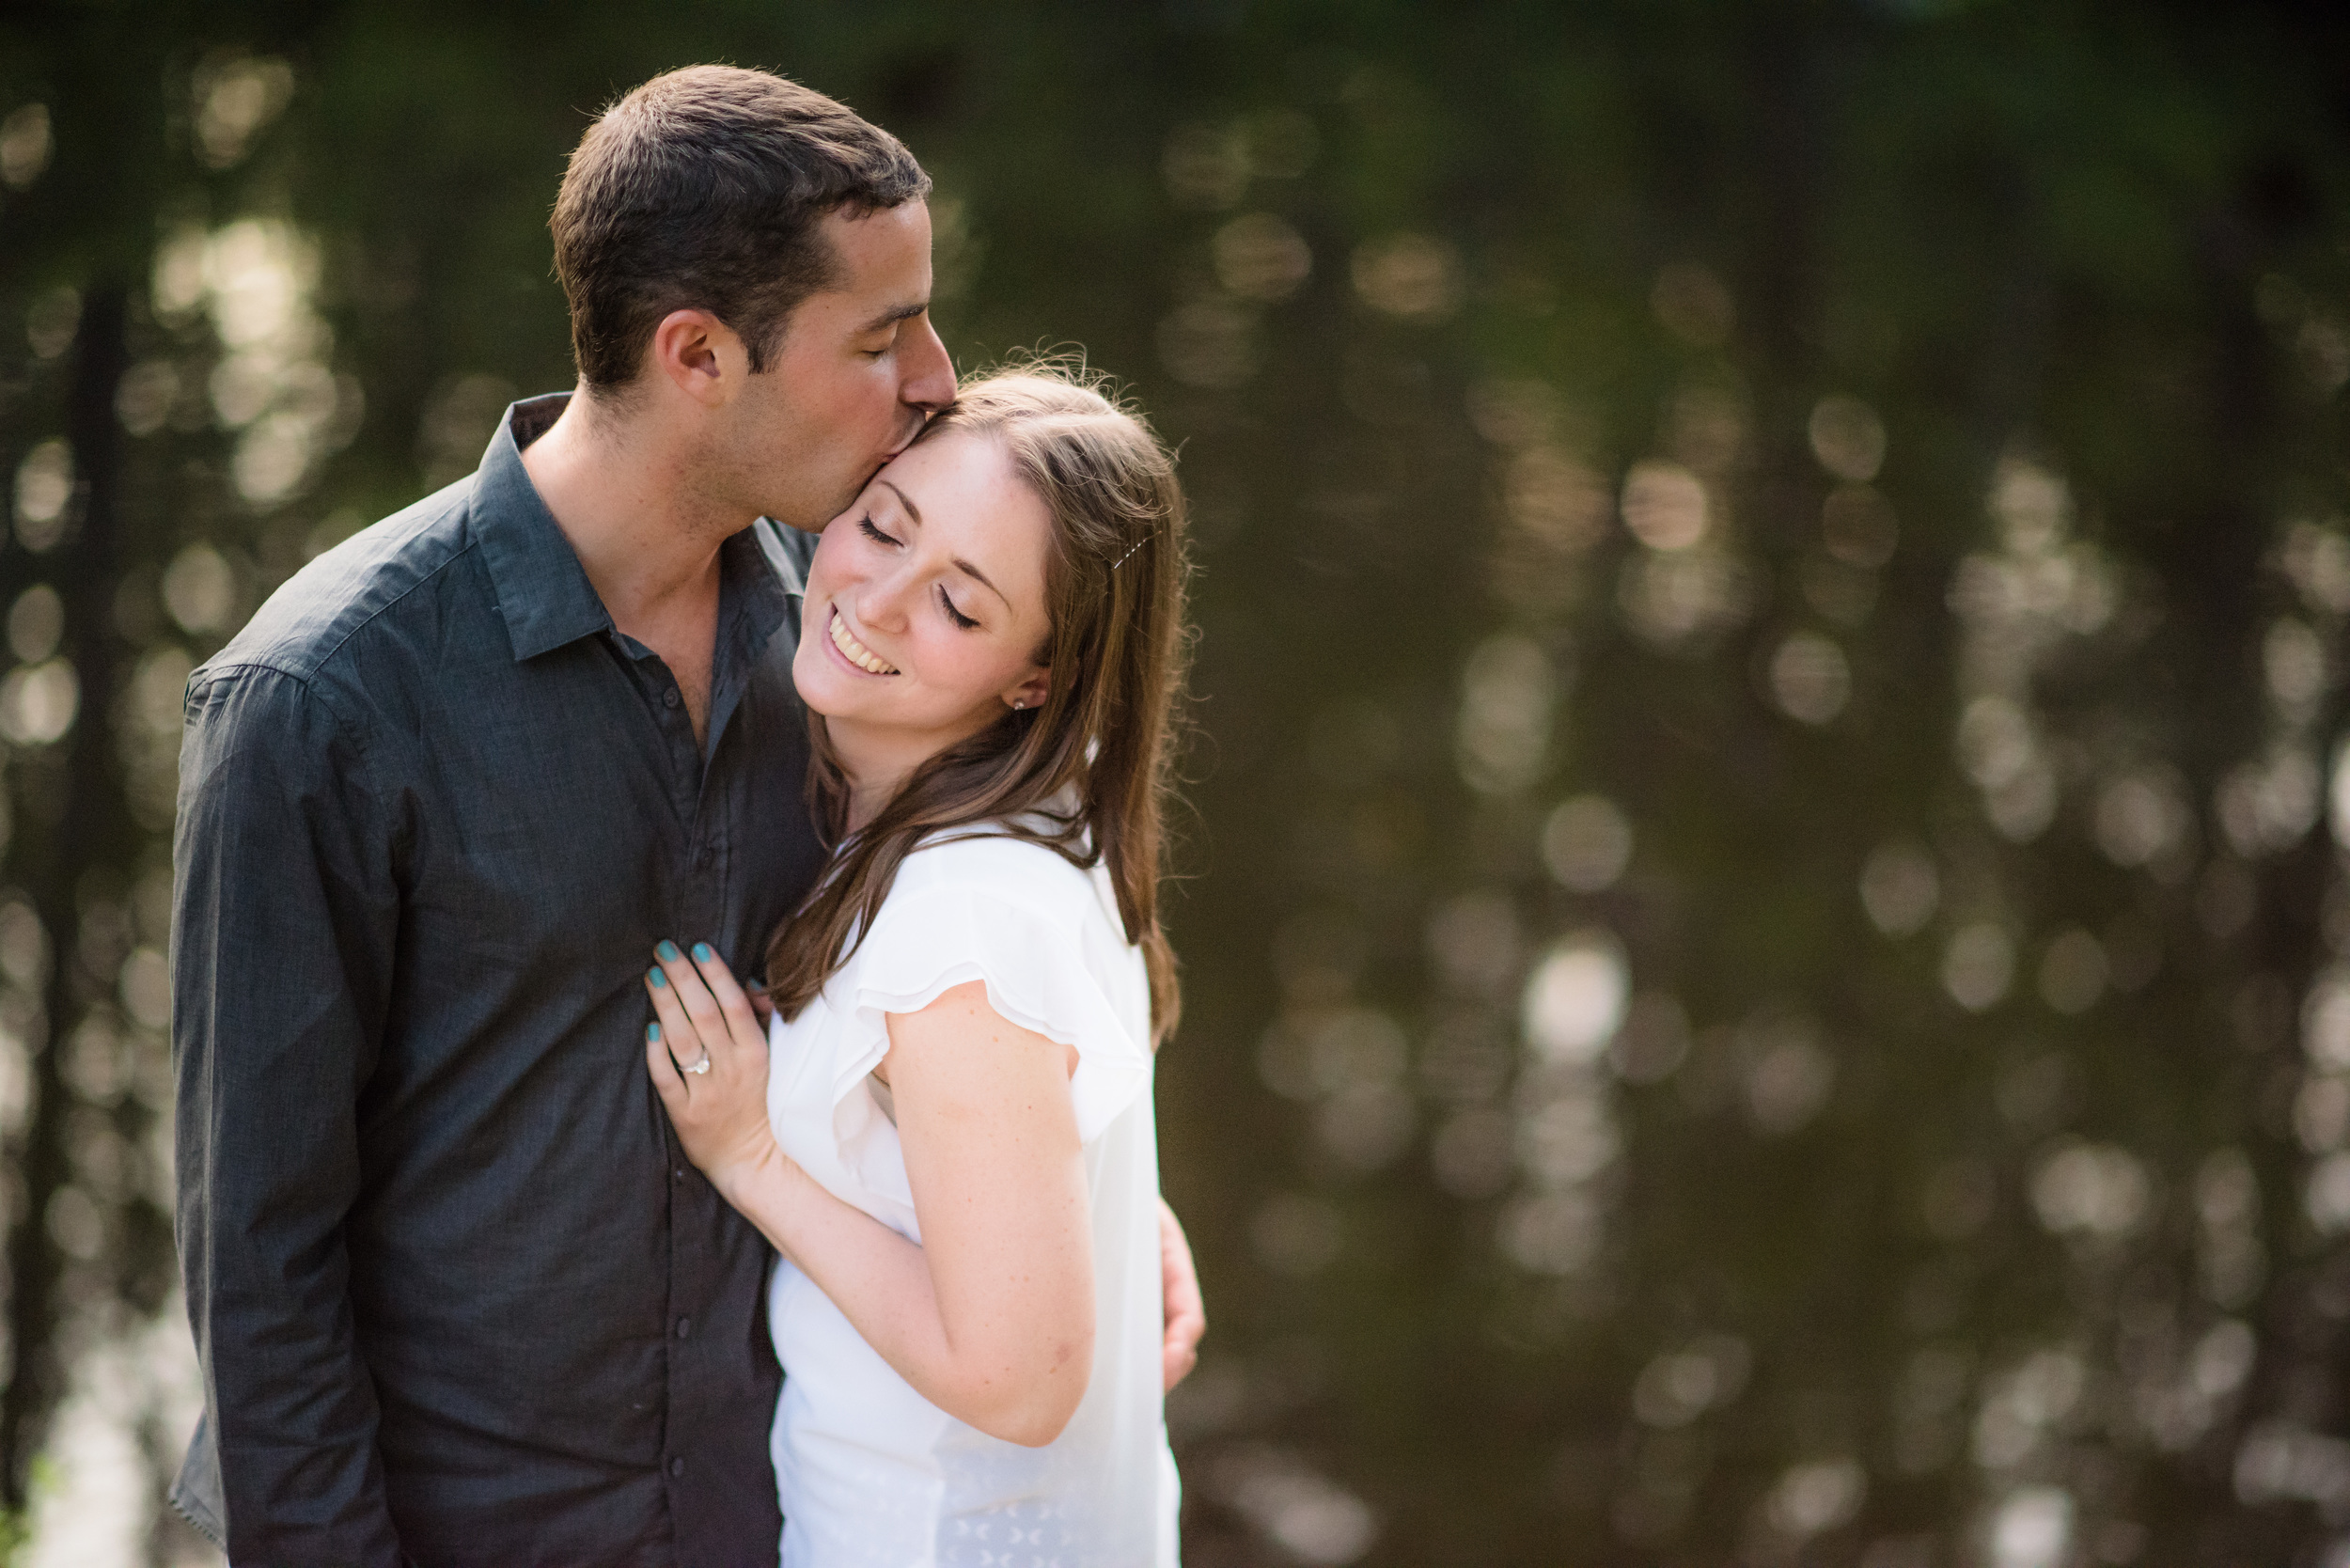 Sweetwater NJ Rustic Style Proposal and Engagement Photos Howard & Sarah 15